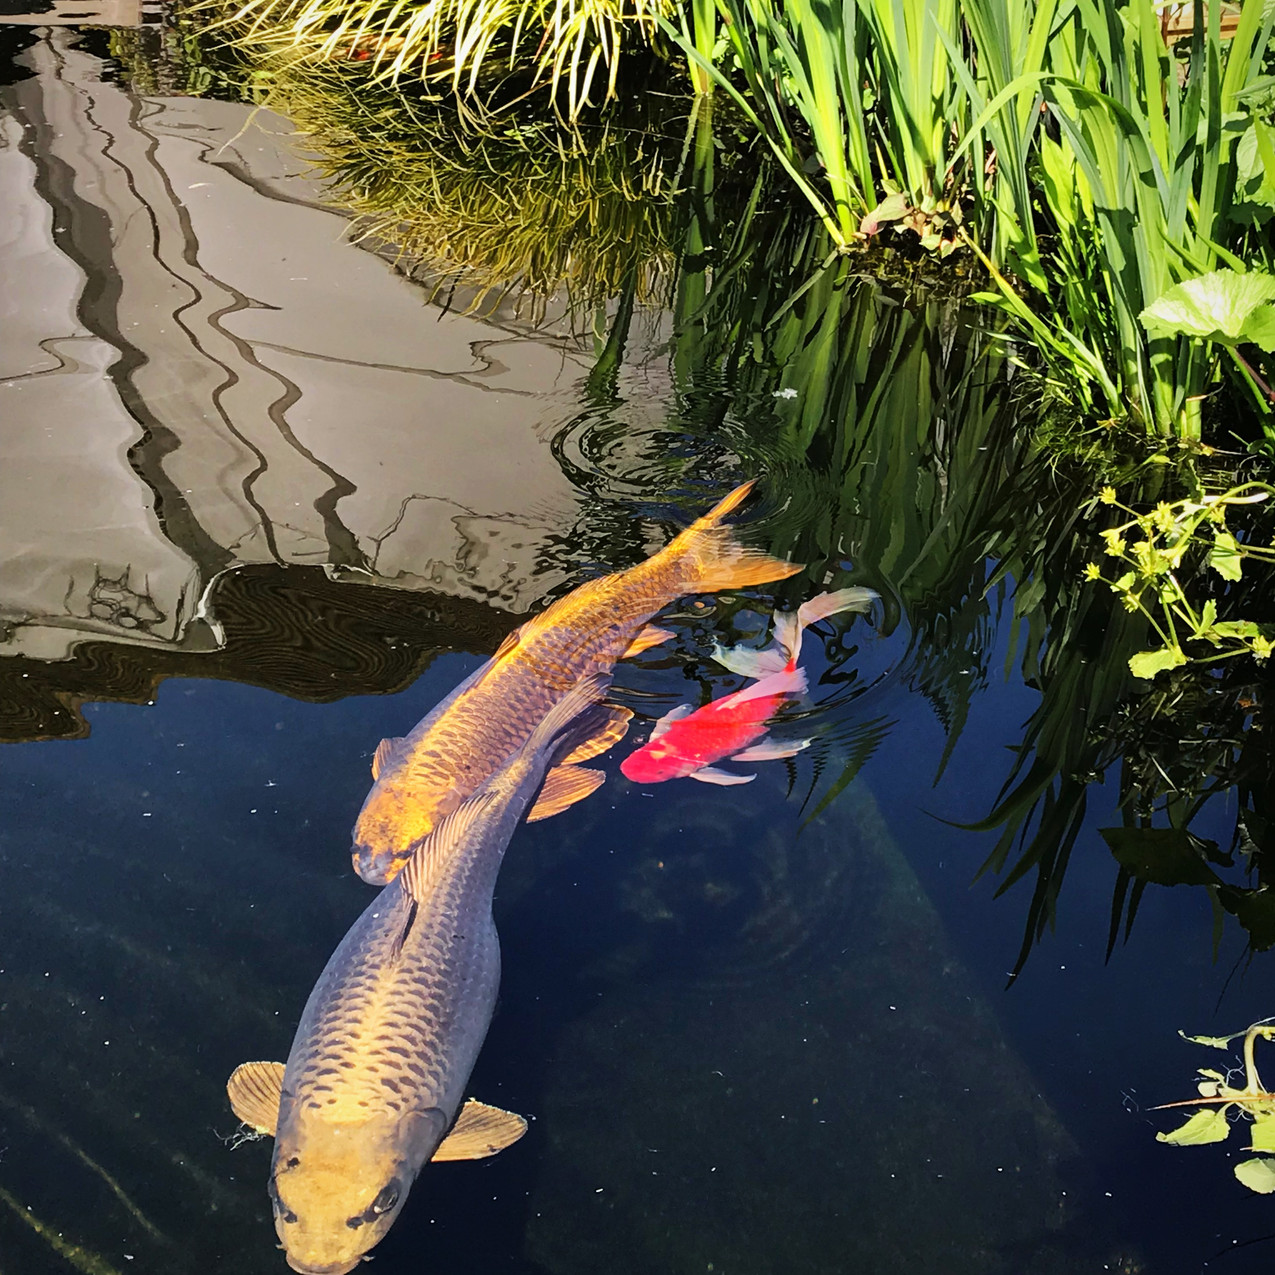 Koi fish pond at Bartholomew Barn in West Sussex